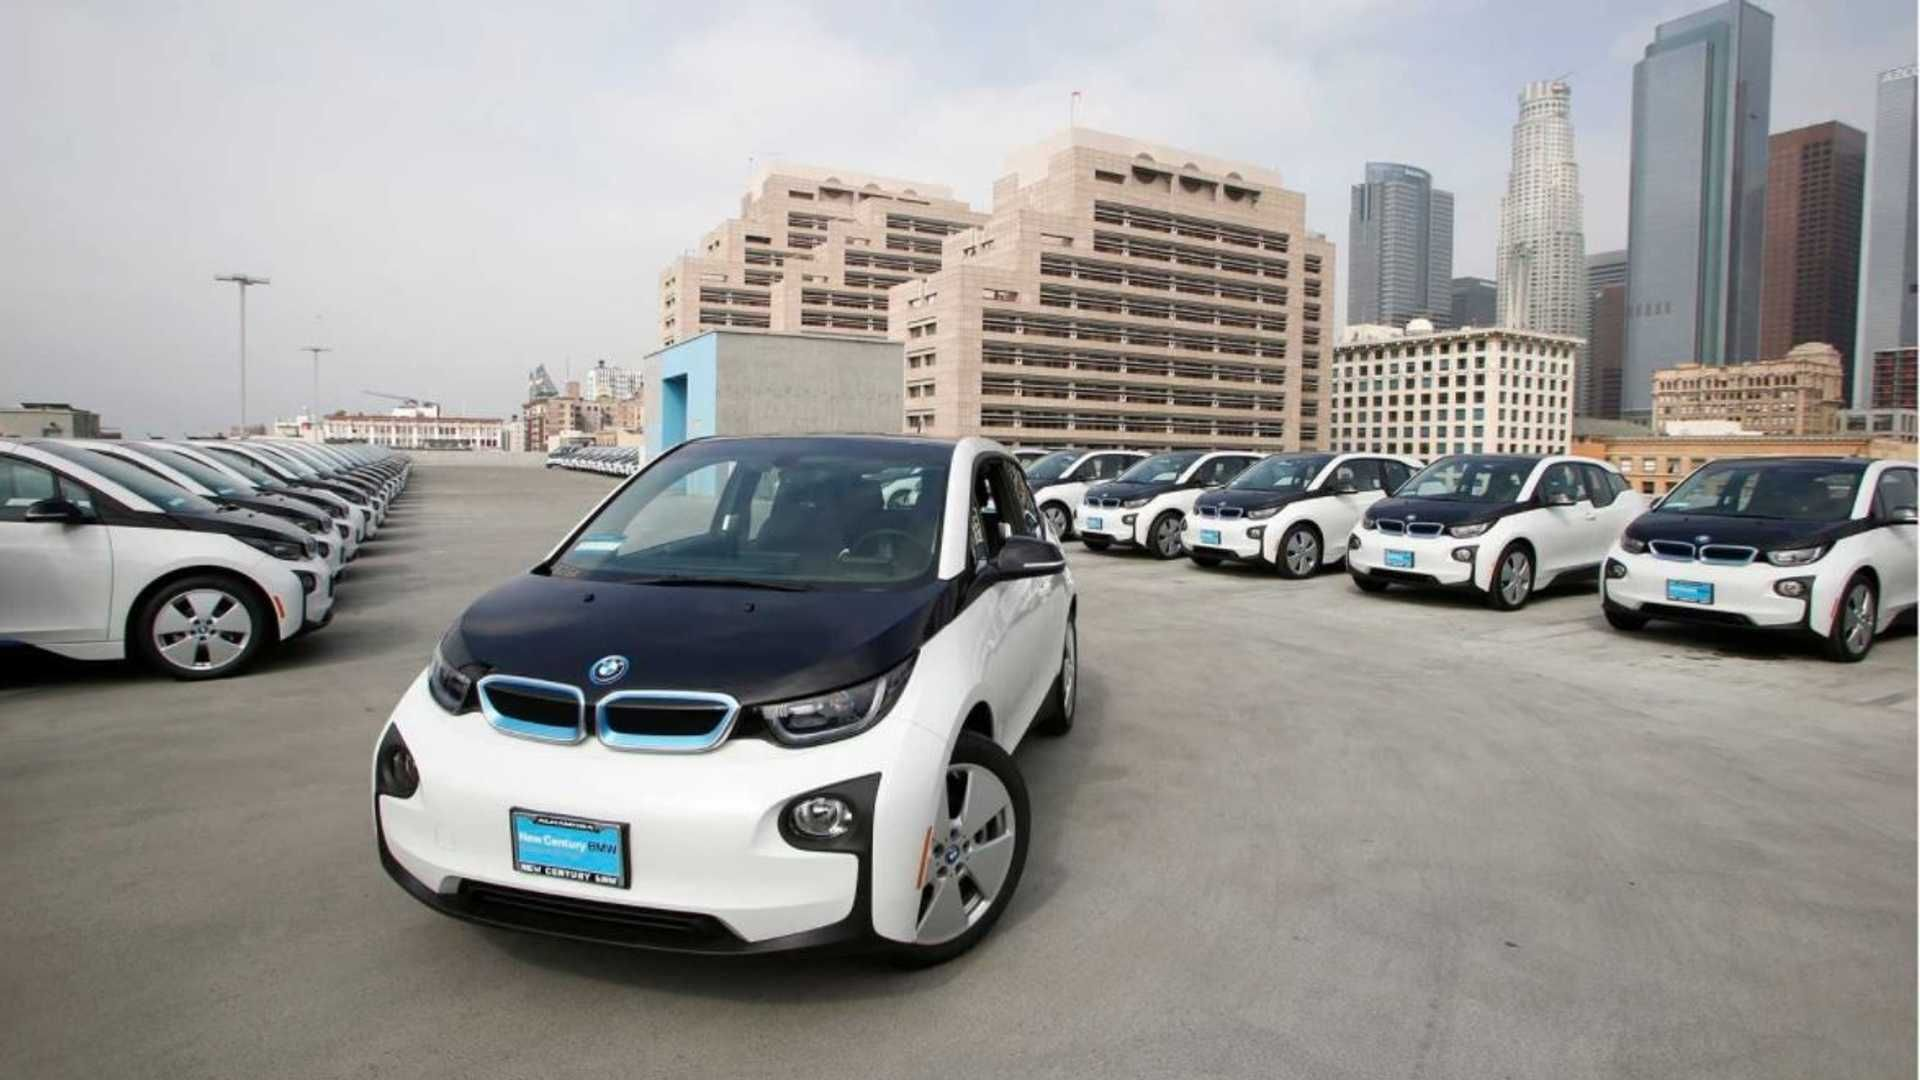 Los Angeles Police Department Is Selling Its Fleet Of Bmw I3 Vehicles In 2020 Bmw I3 Bmw Los Angeles Police Department